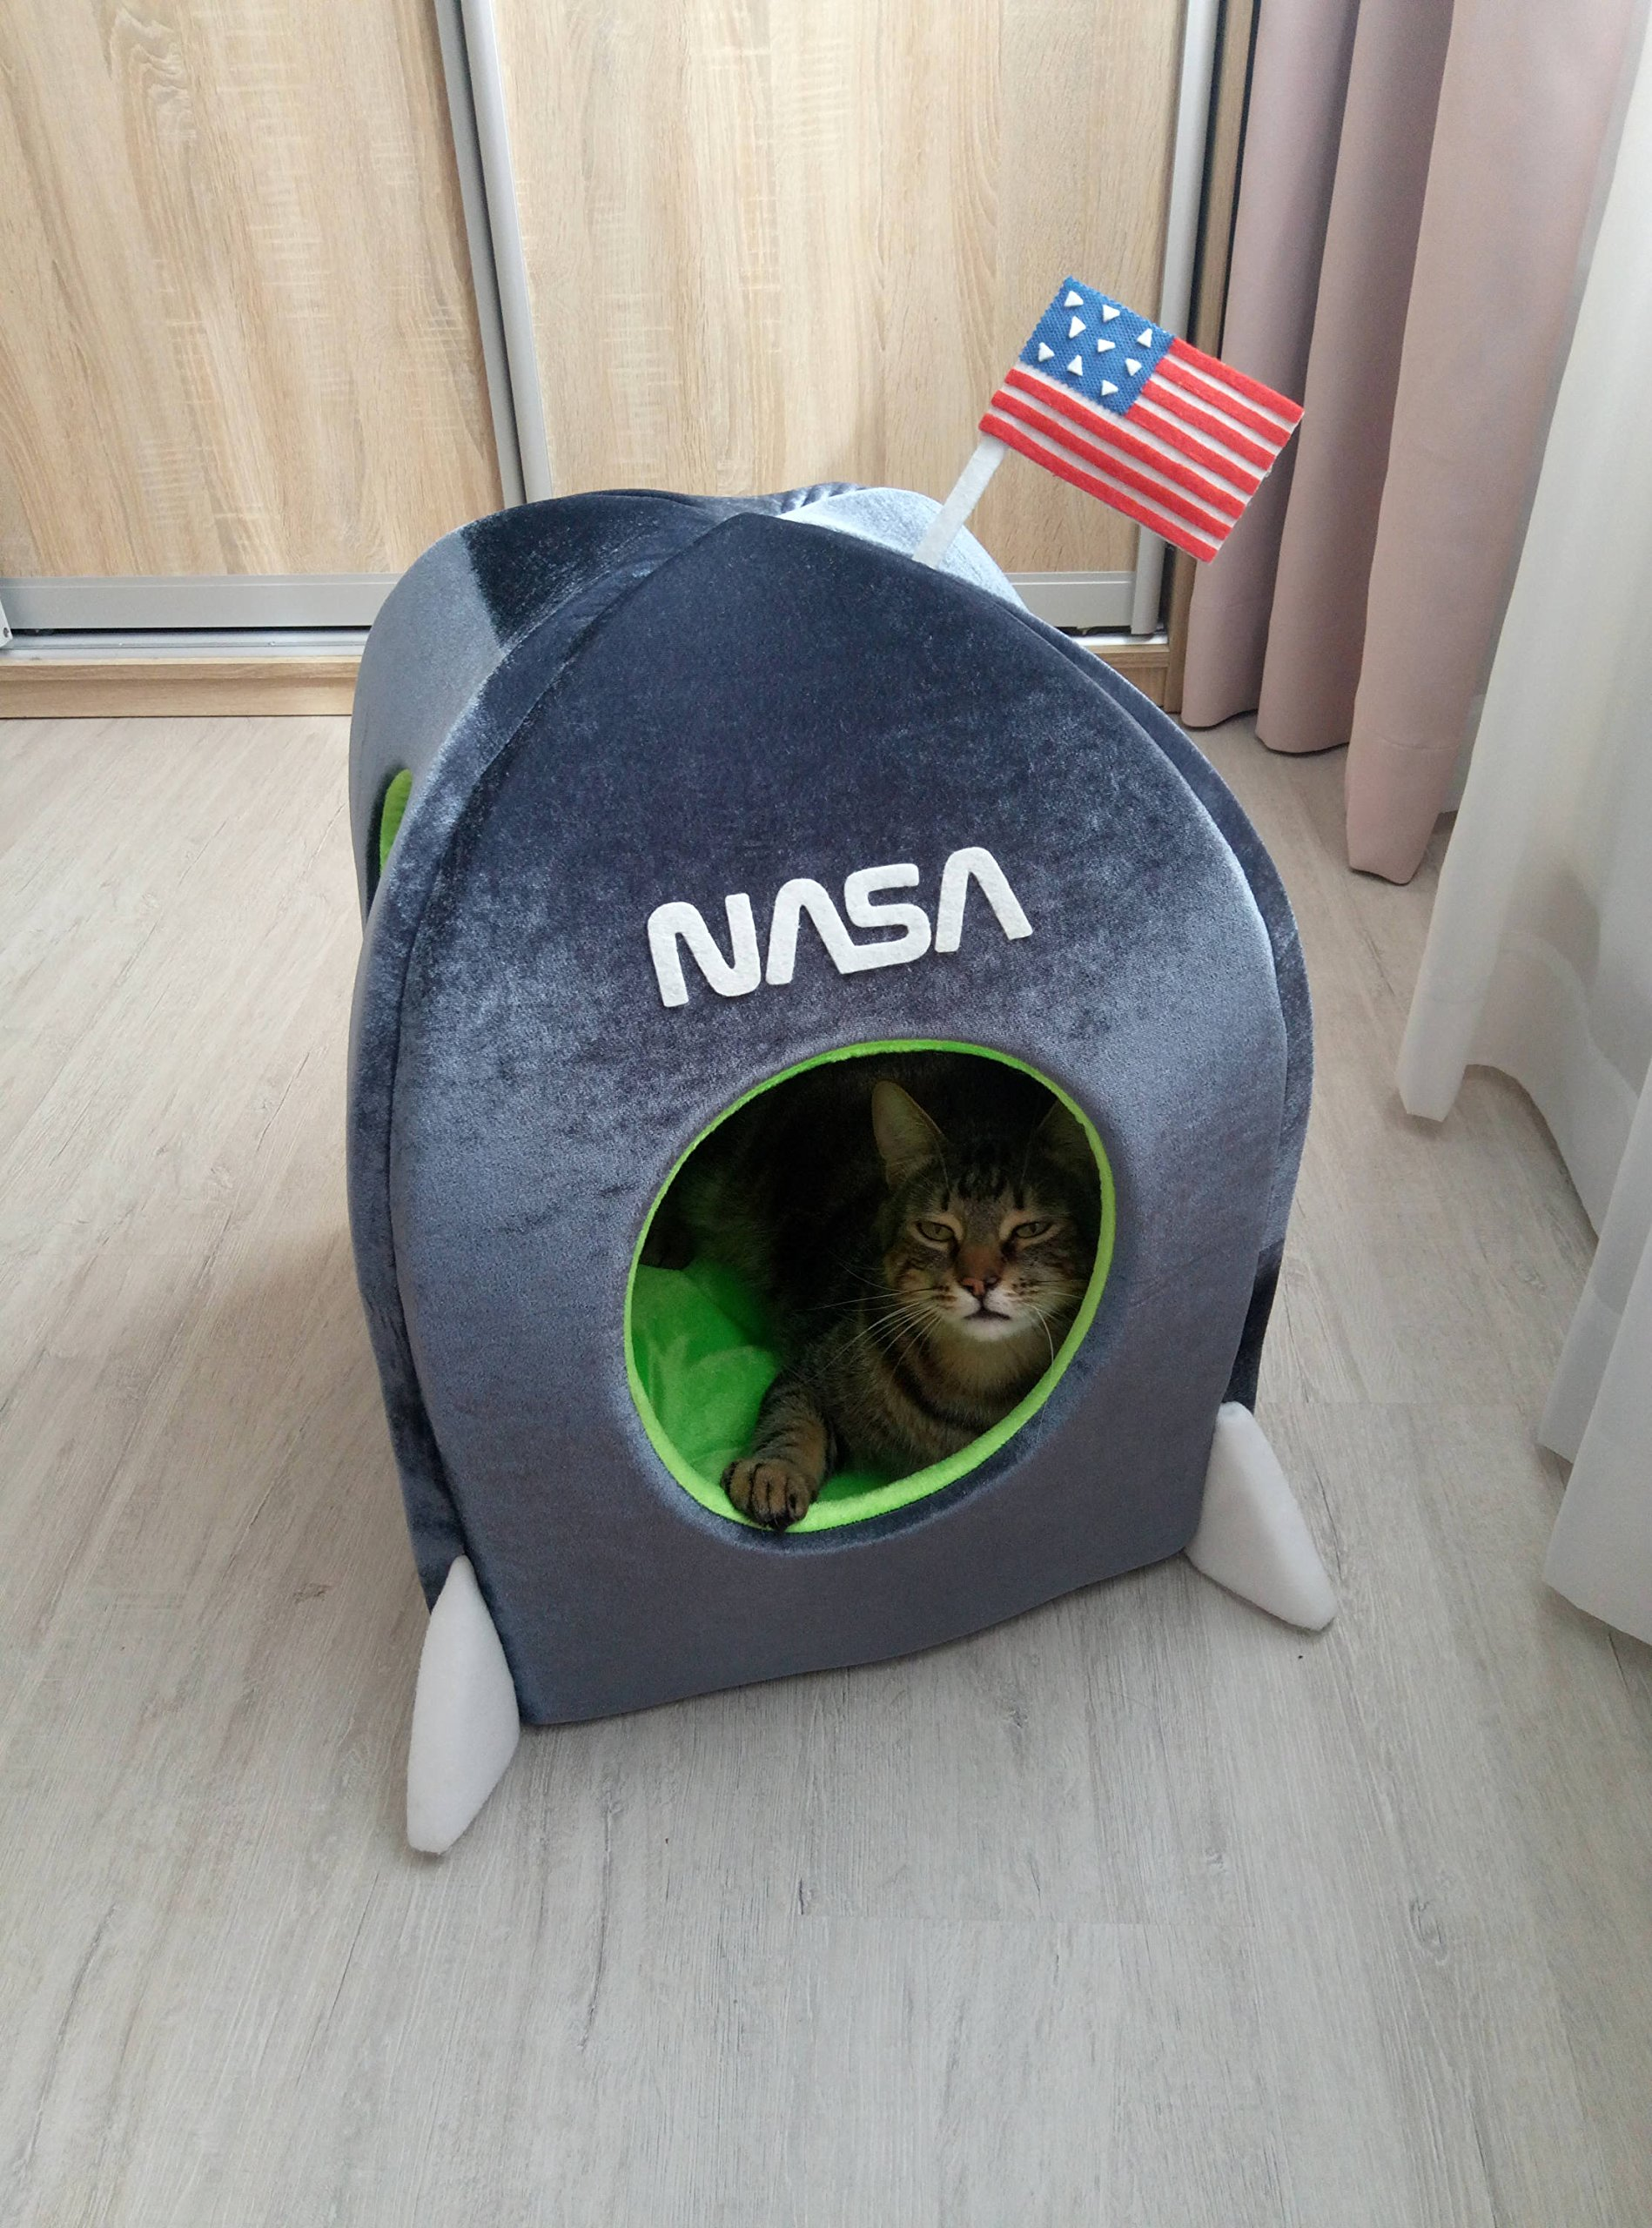 Cat House Rocket, Spaceship Сat house, Small Dog bed, Сat furniture, Сat teepee, Dog teepee, Pet teepee